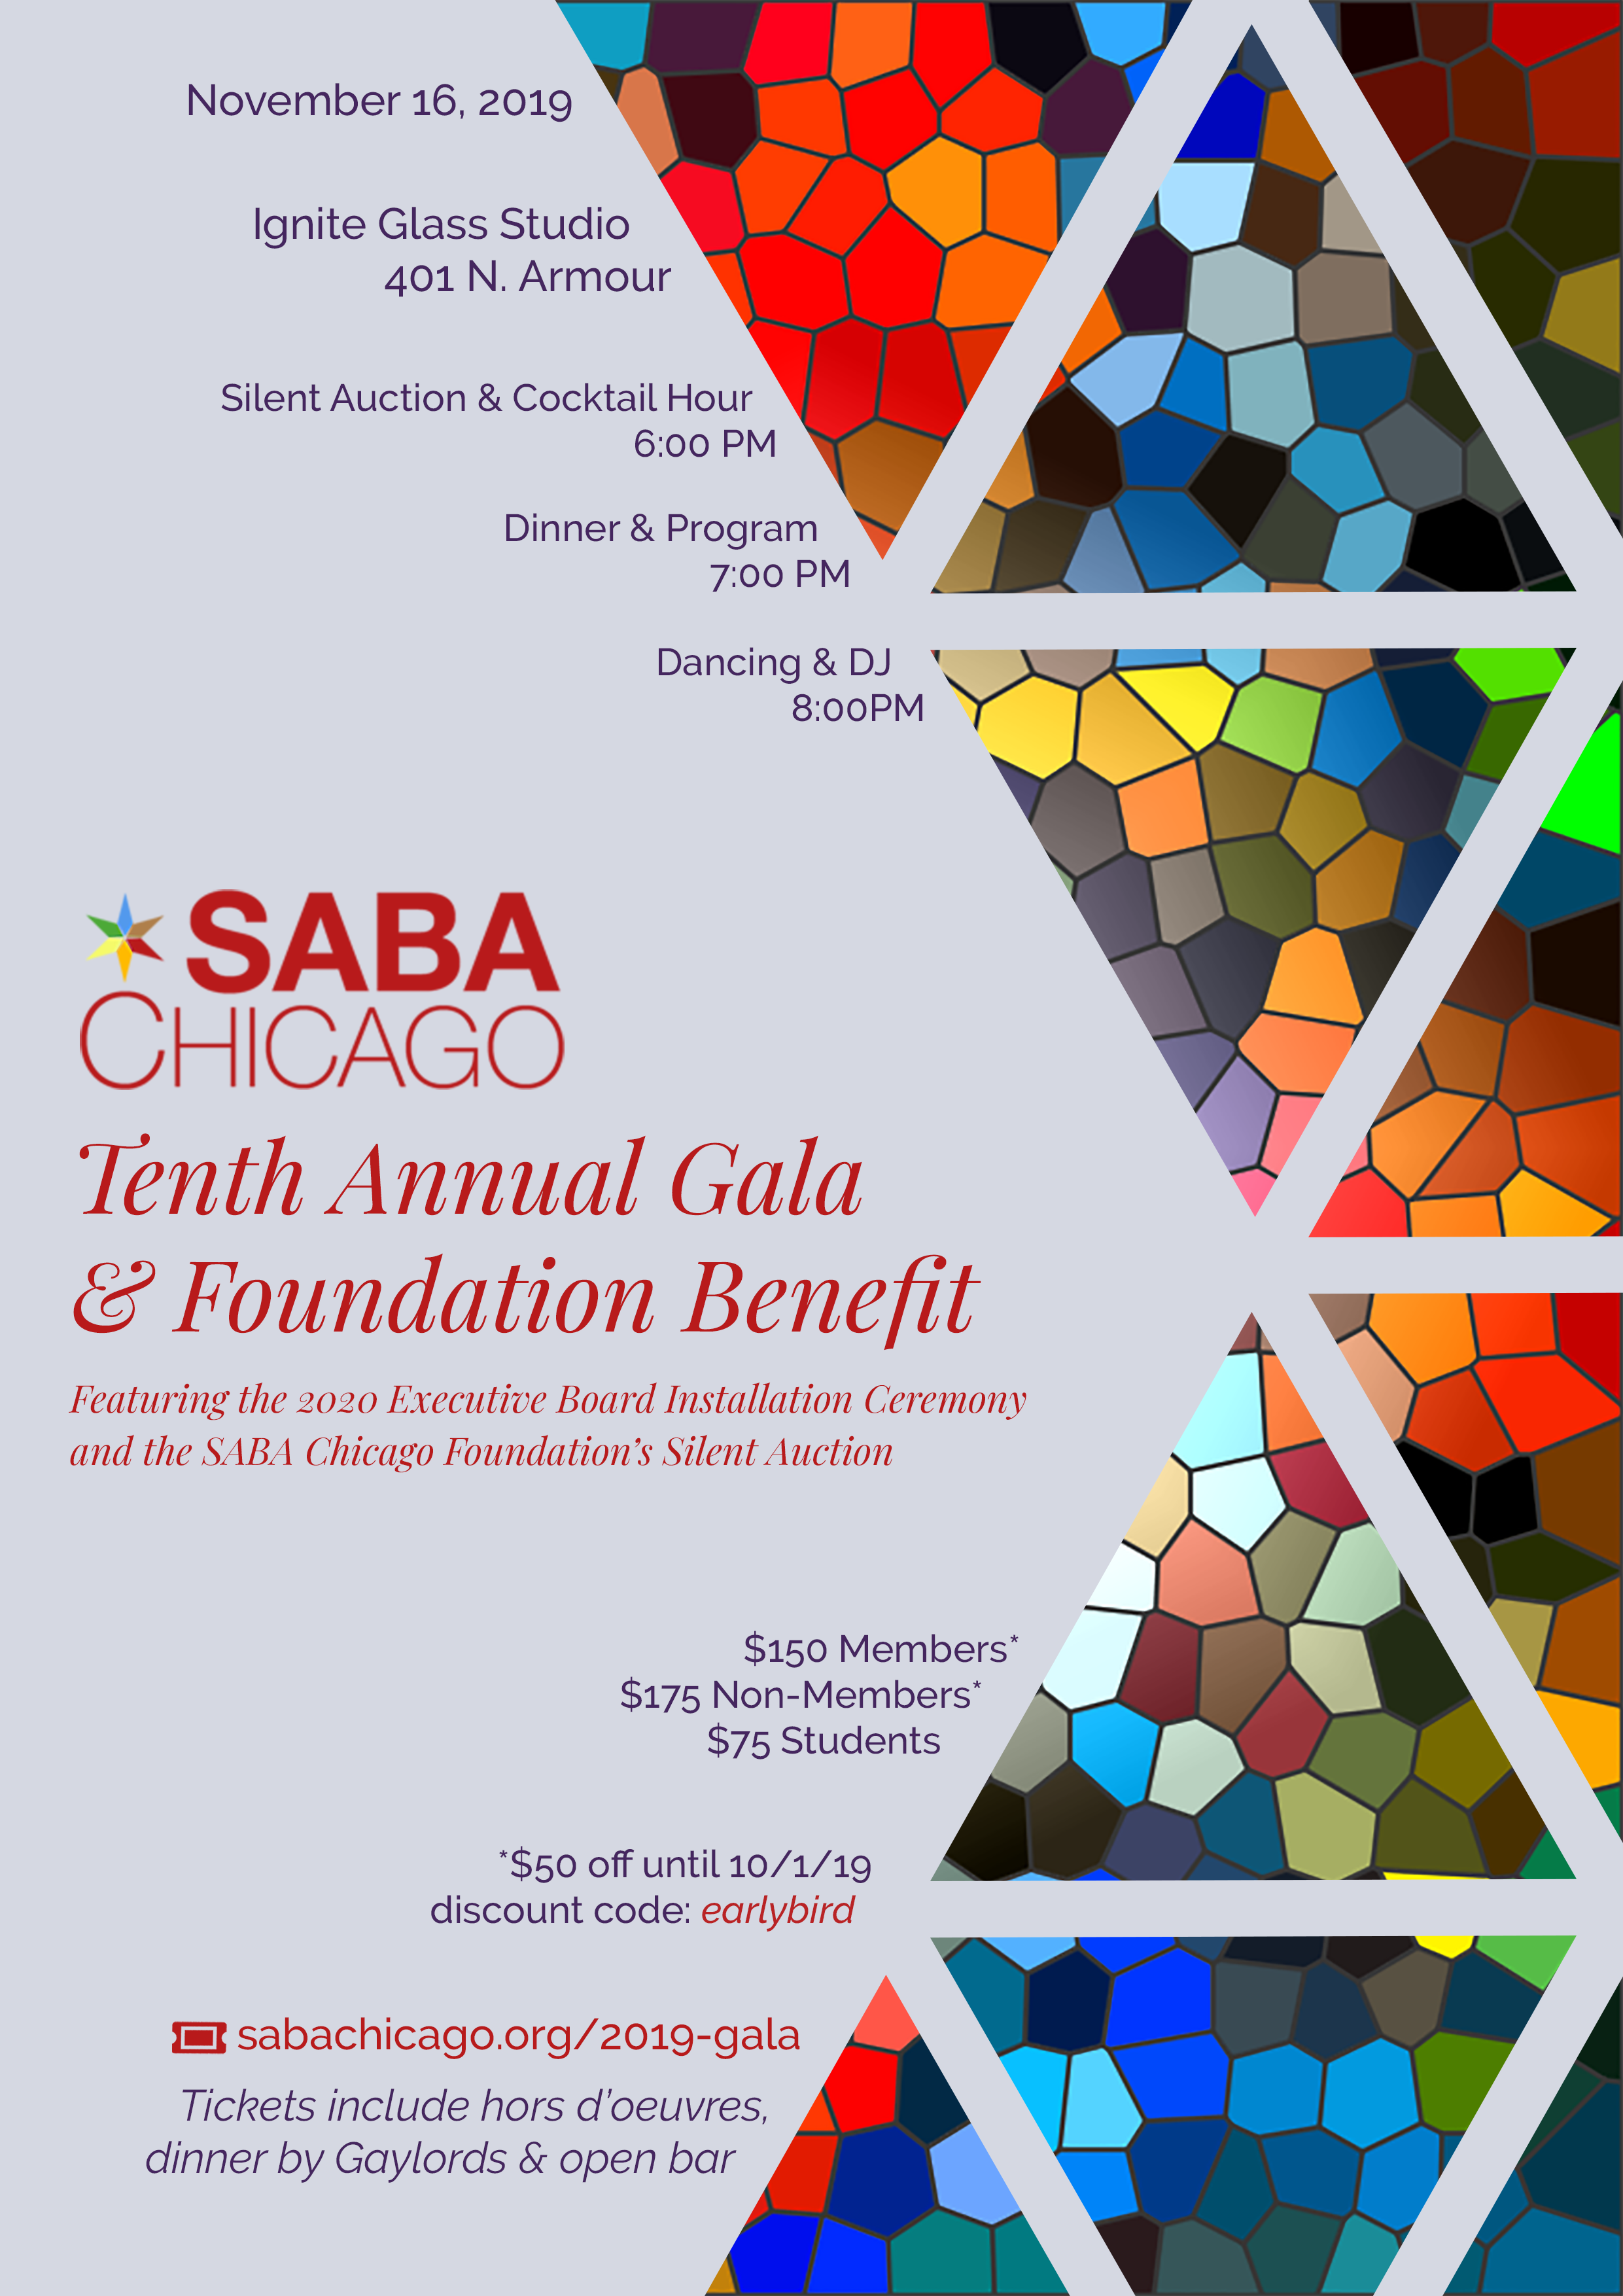 SABA Chicago Installation Ceremony & Foundation Benefit